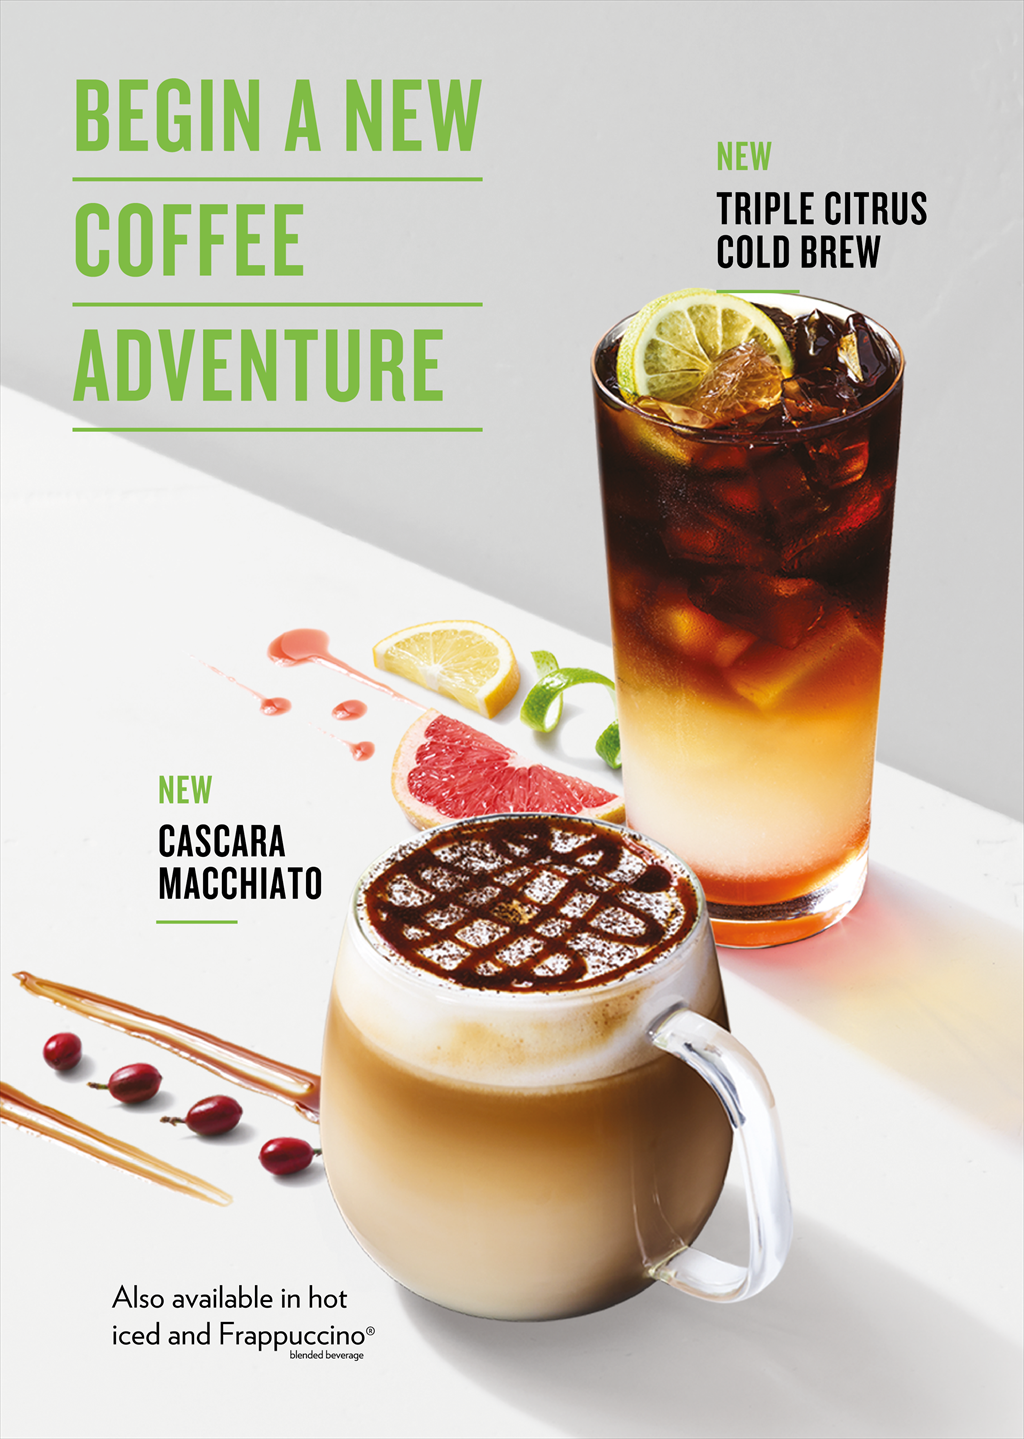 starbucks-cascara